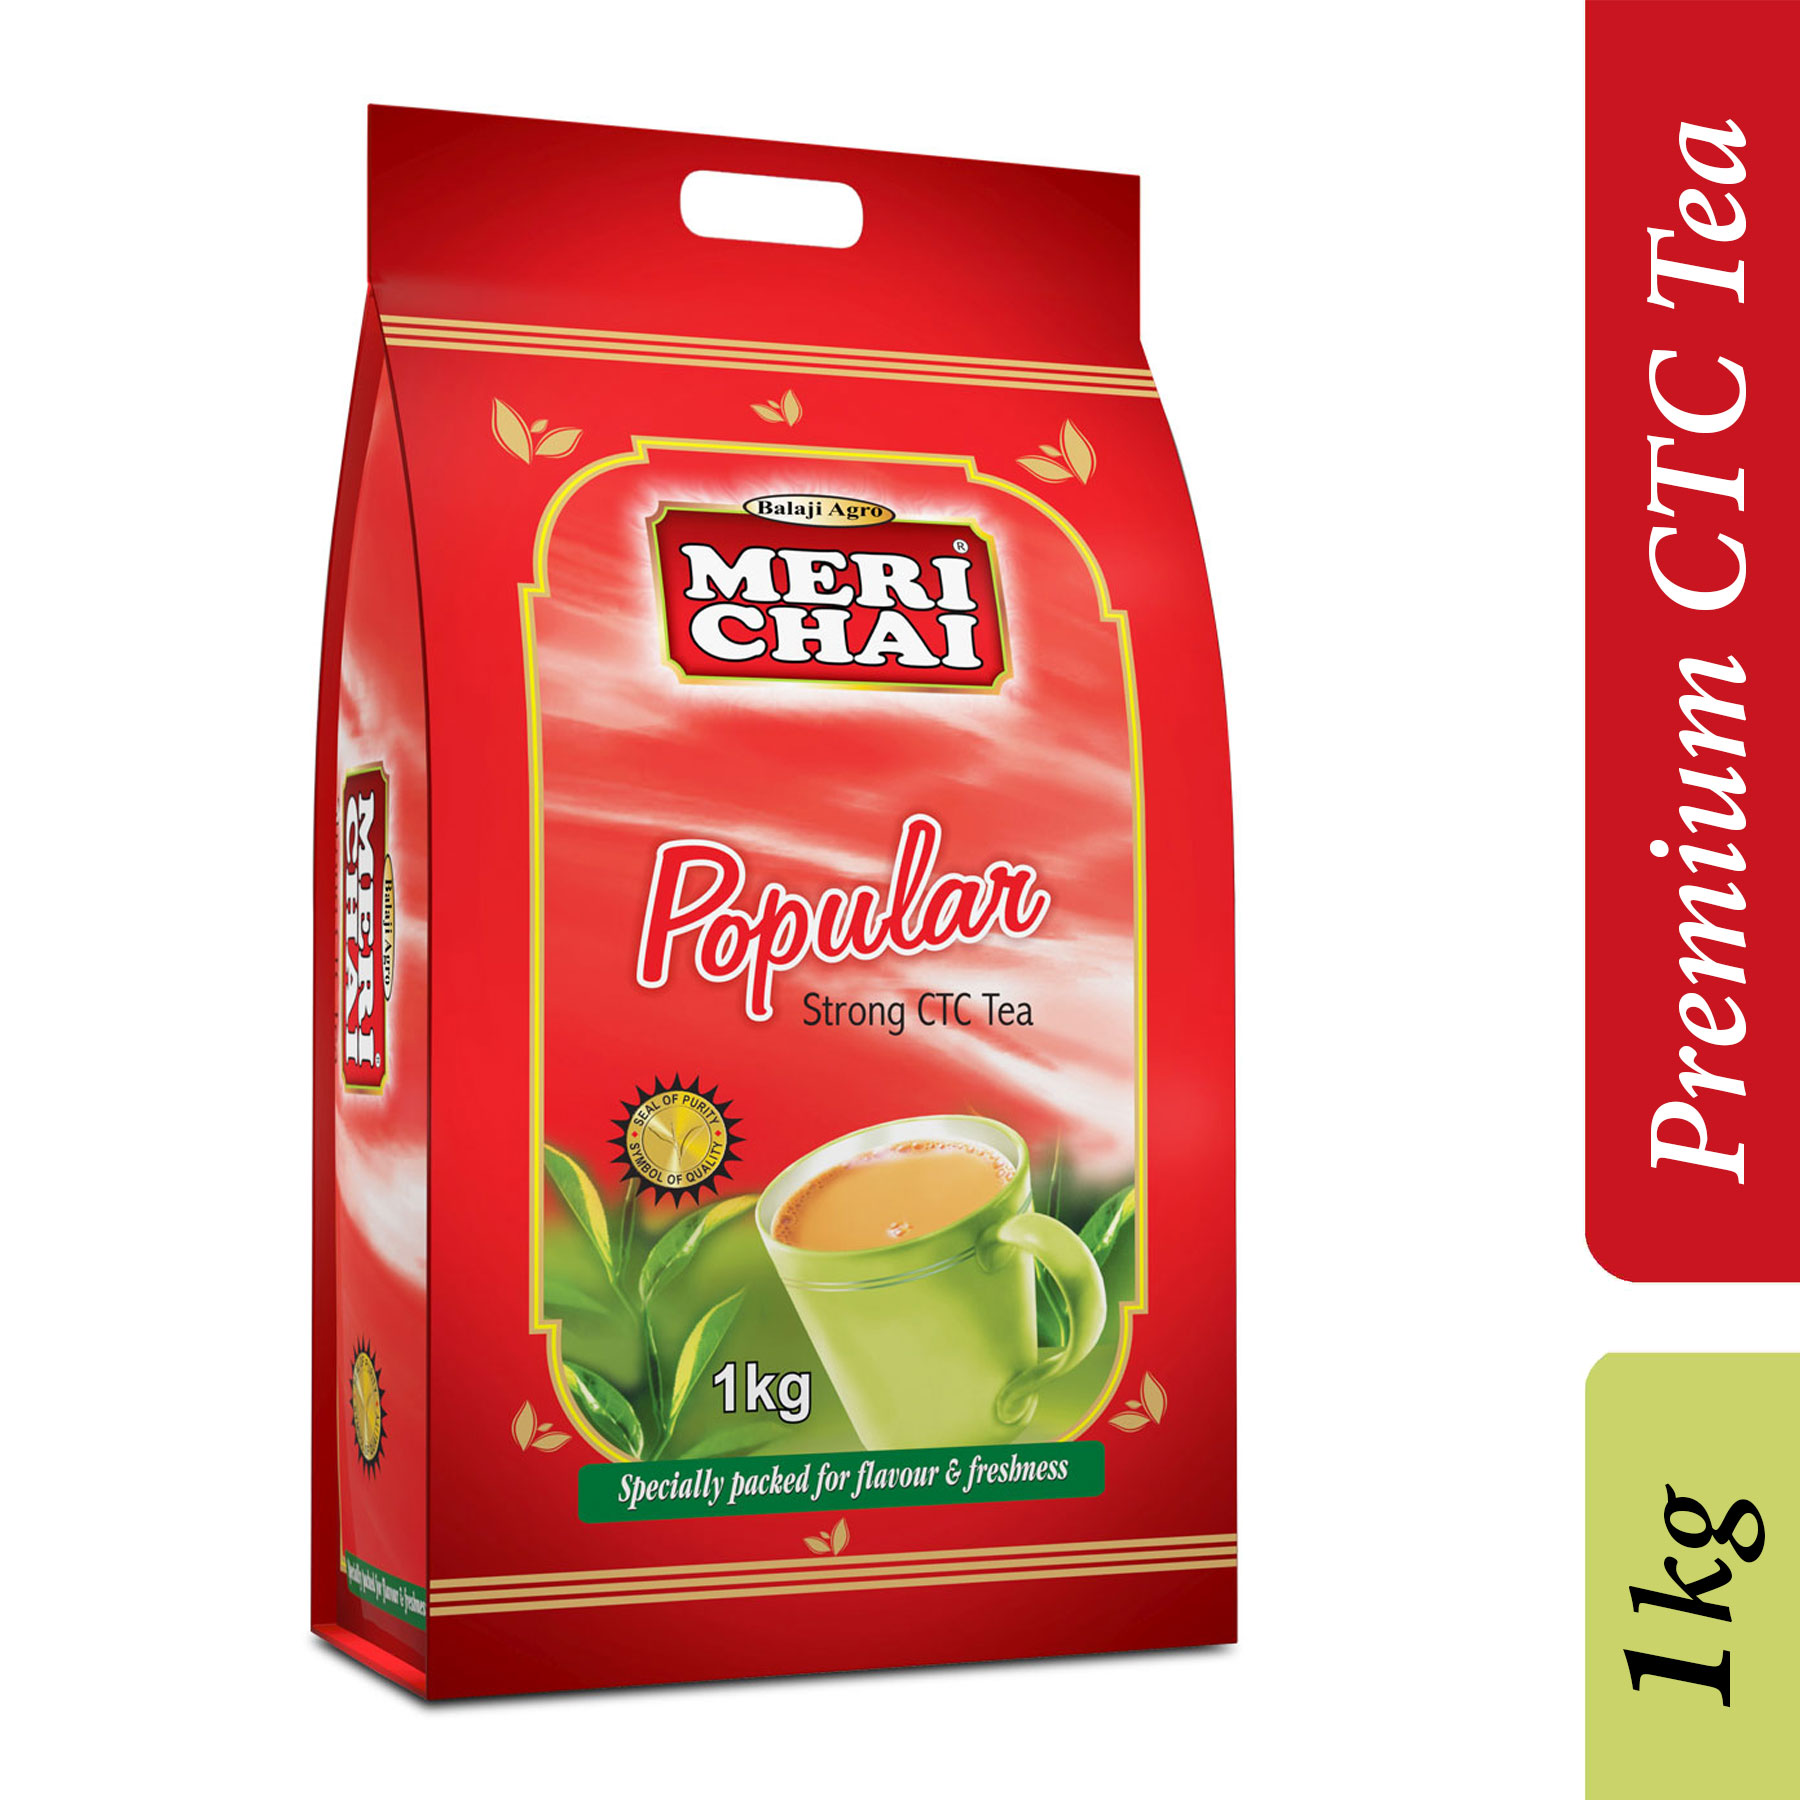 Meri Chai Popular Strong CTC Tea